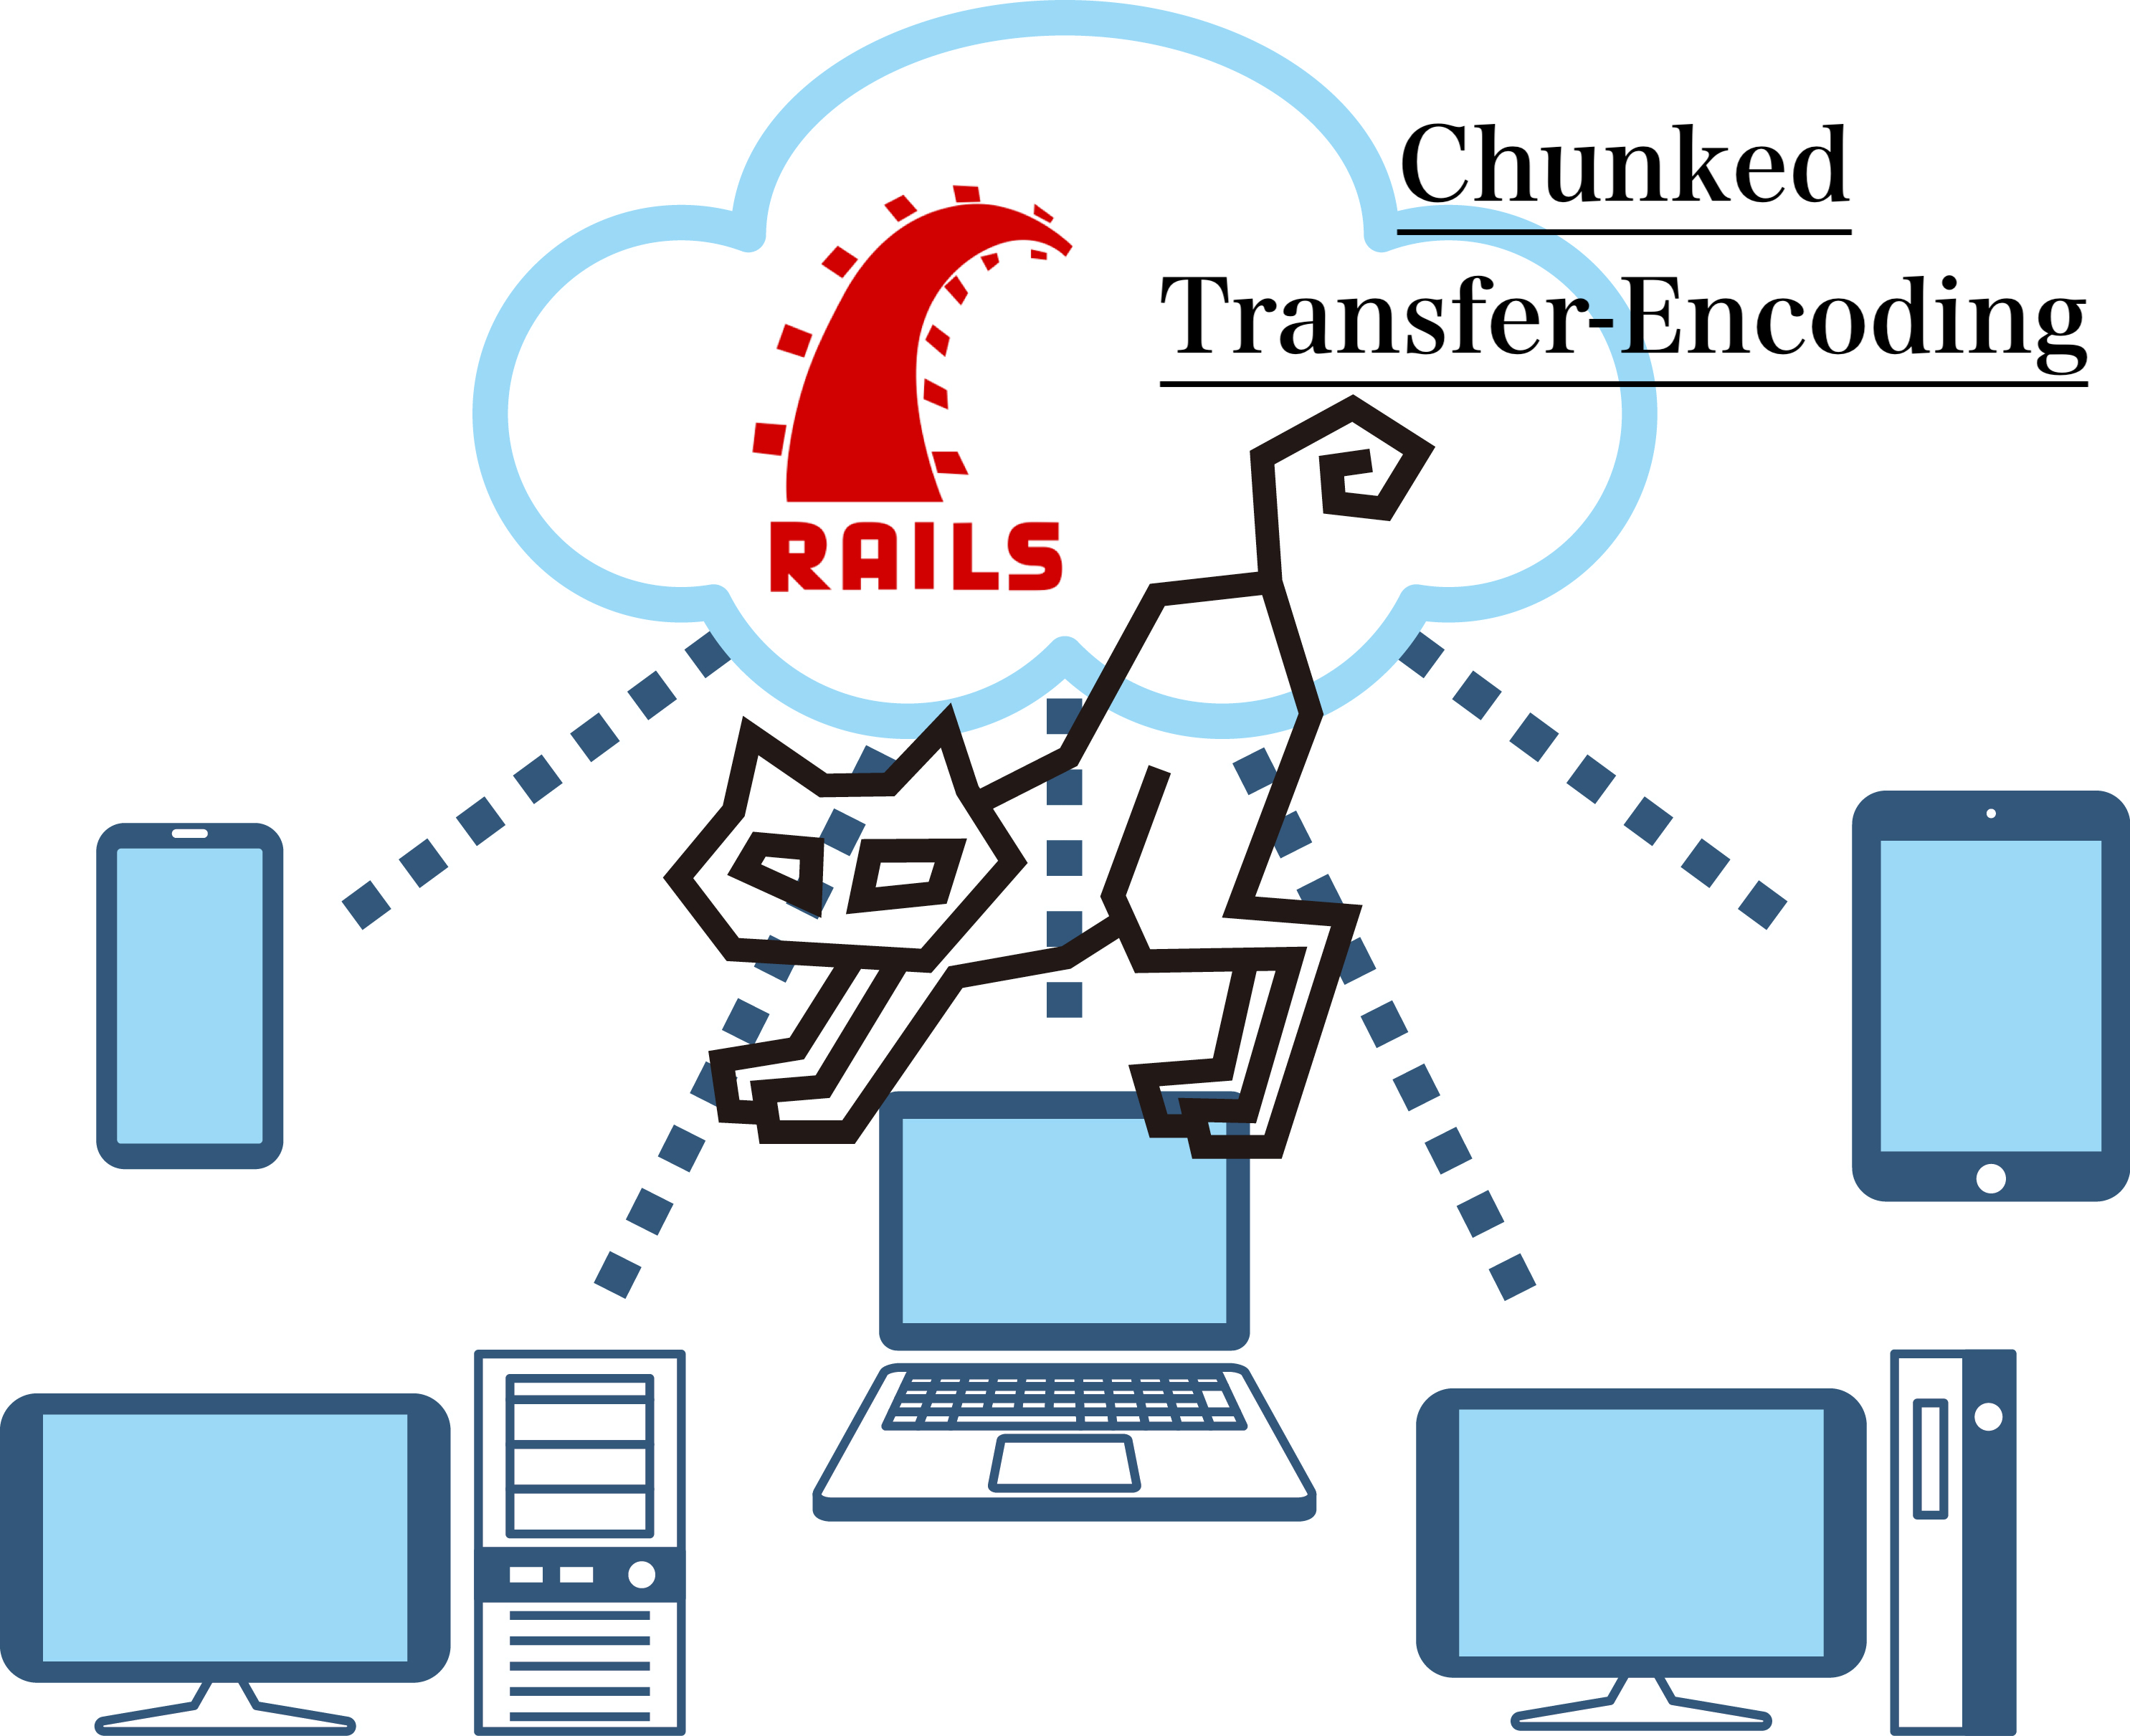 Chunked Transfer-Encoding